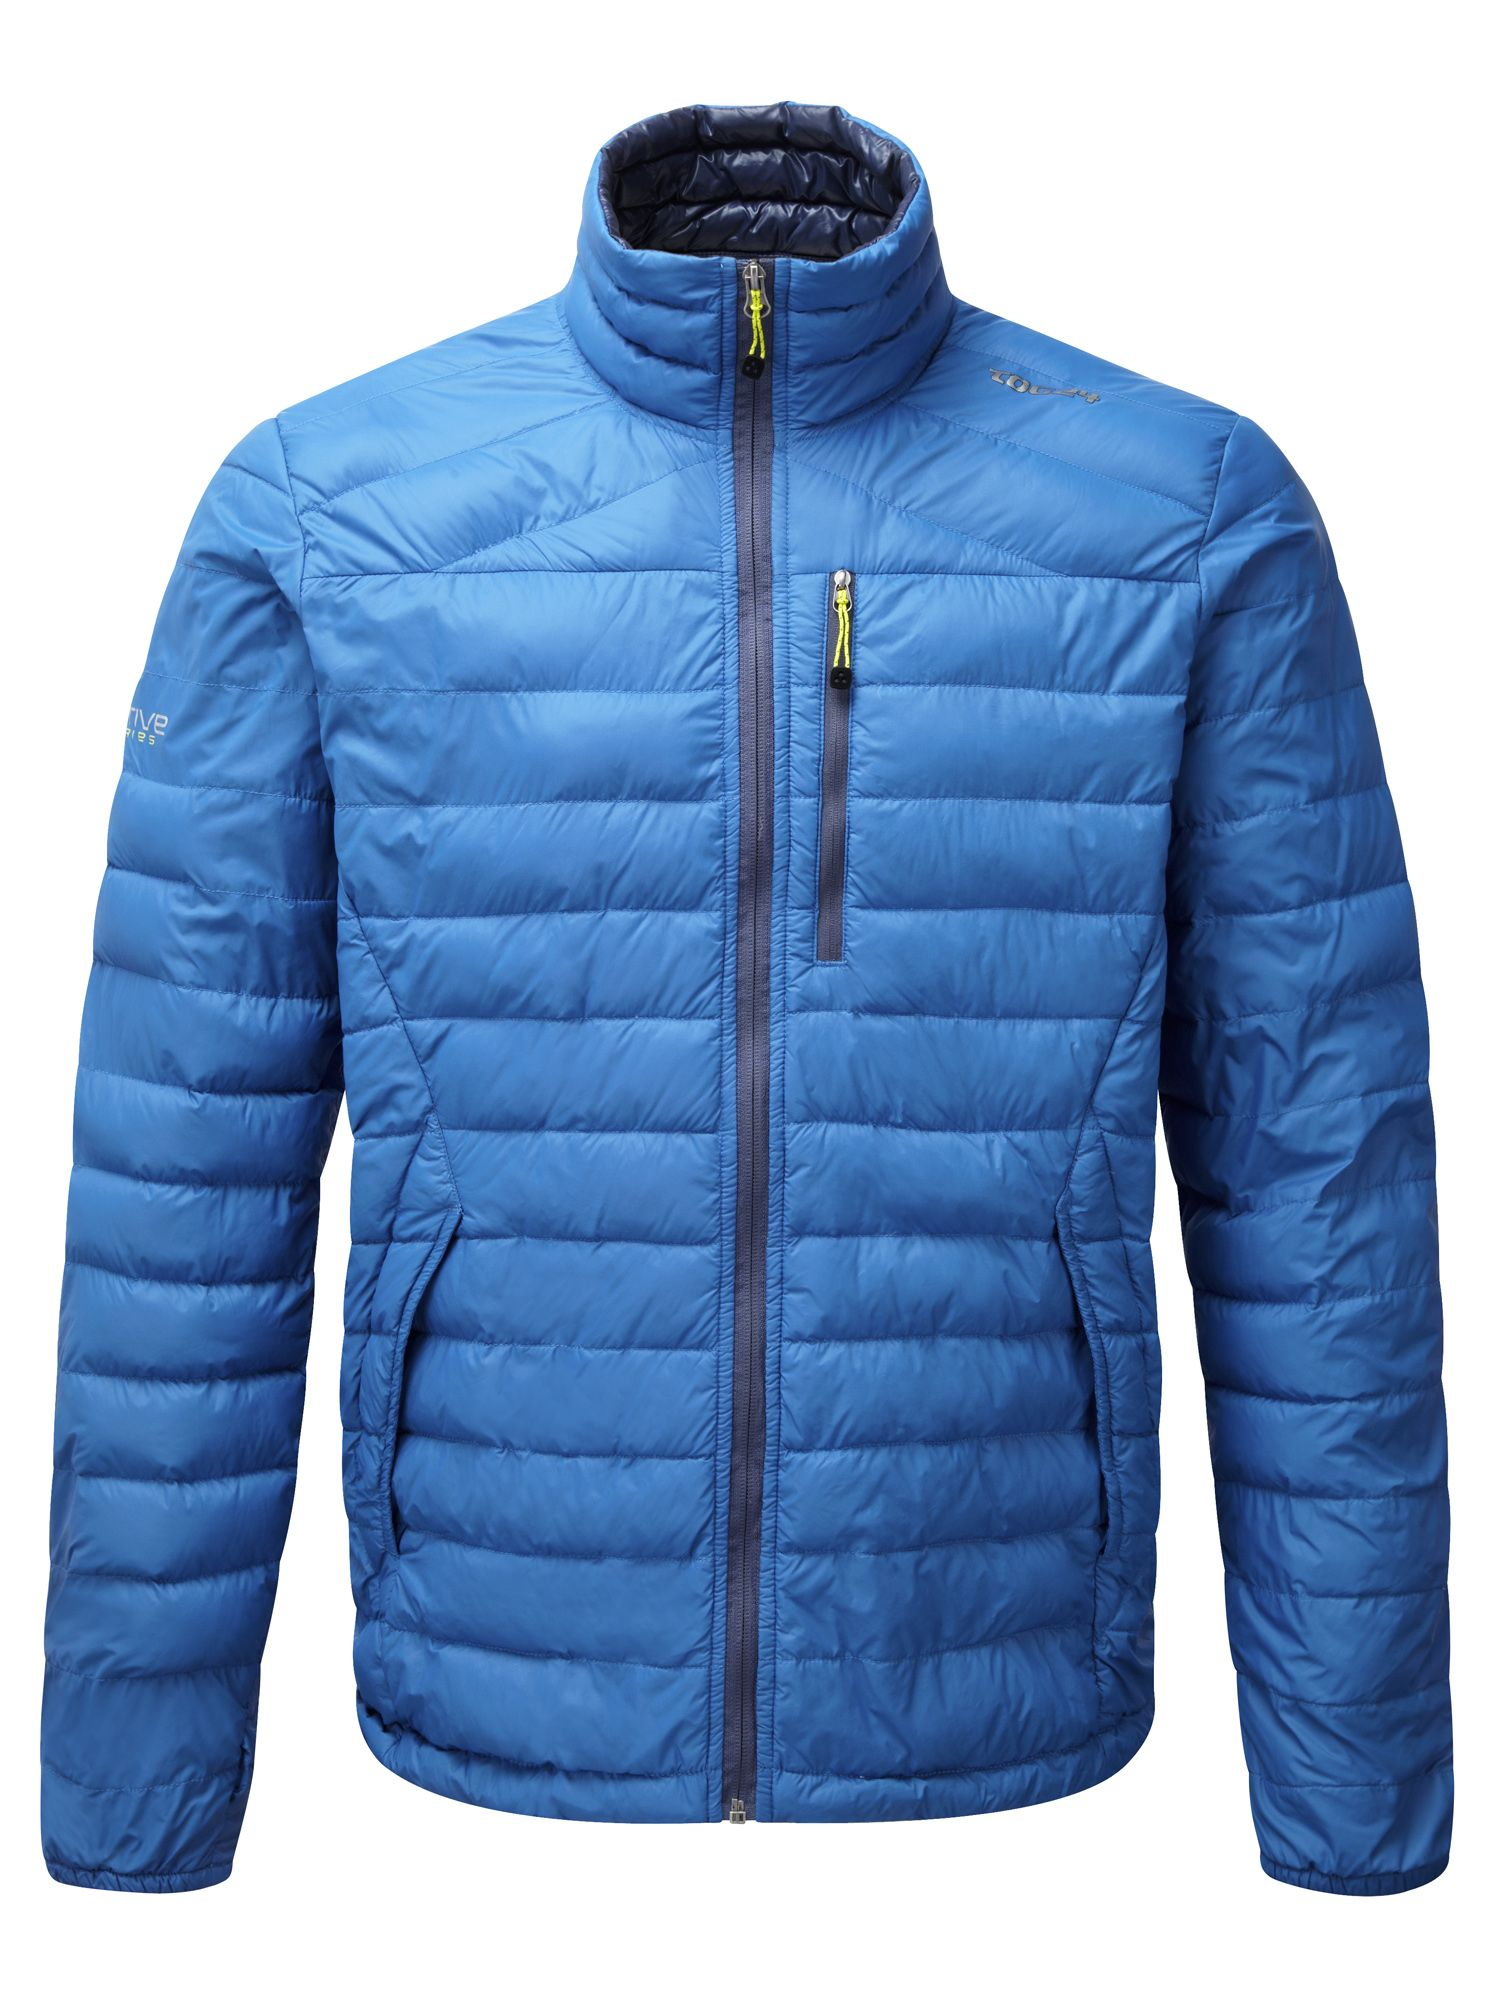 Get Free Shipping on Down Jackets and Coats, along with other outdoor gear and Free Shipping Over $35· 10% Back in Rewards· Price match· Lifetime returnsTypes: Down Jackets, Fleece Jackets, Ski Jackets, Rain Jackets, Insulated Jackets.